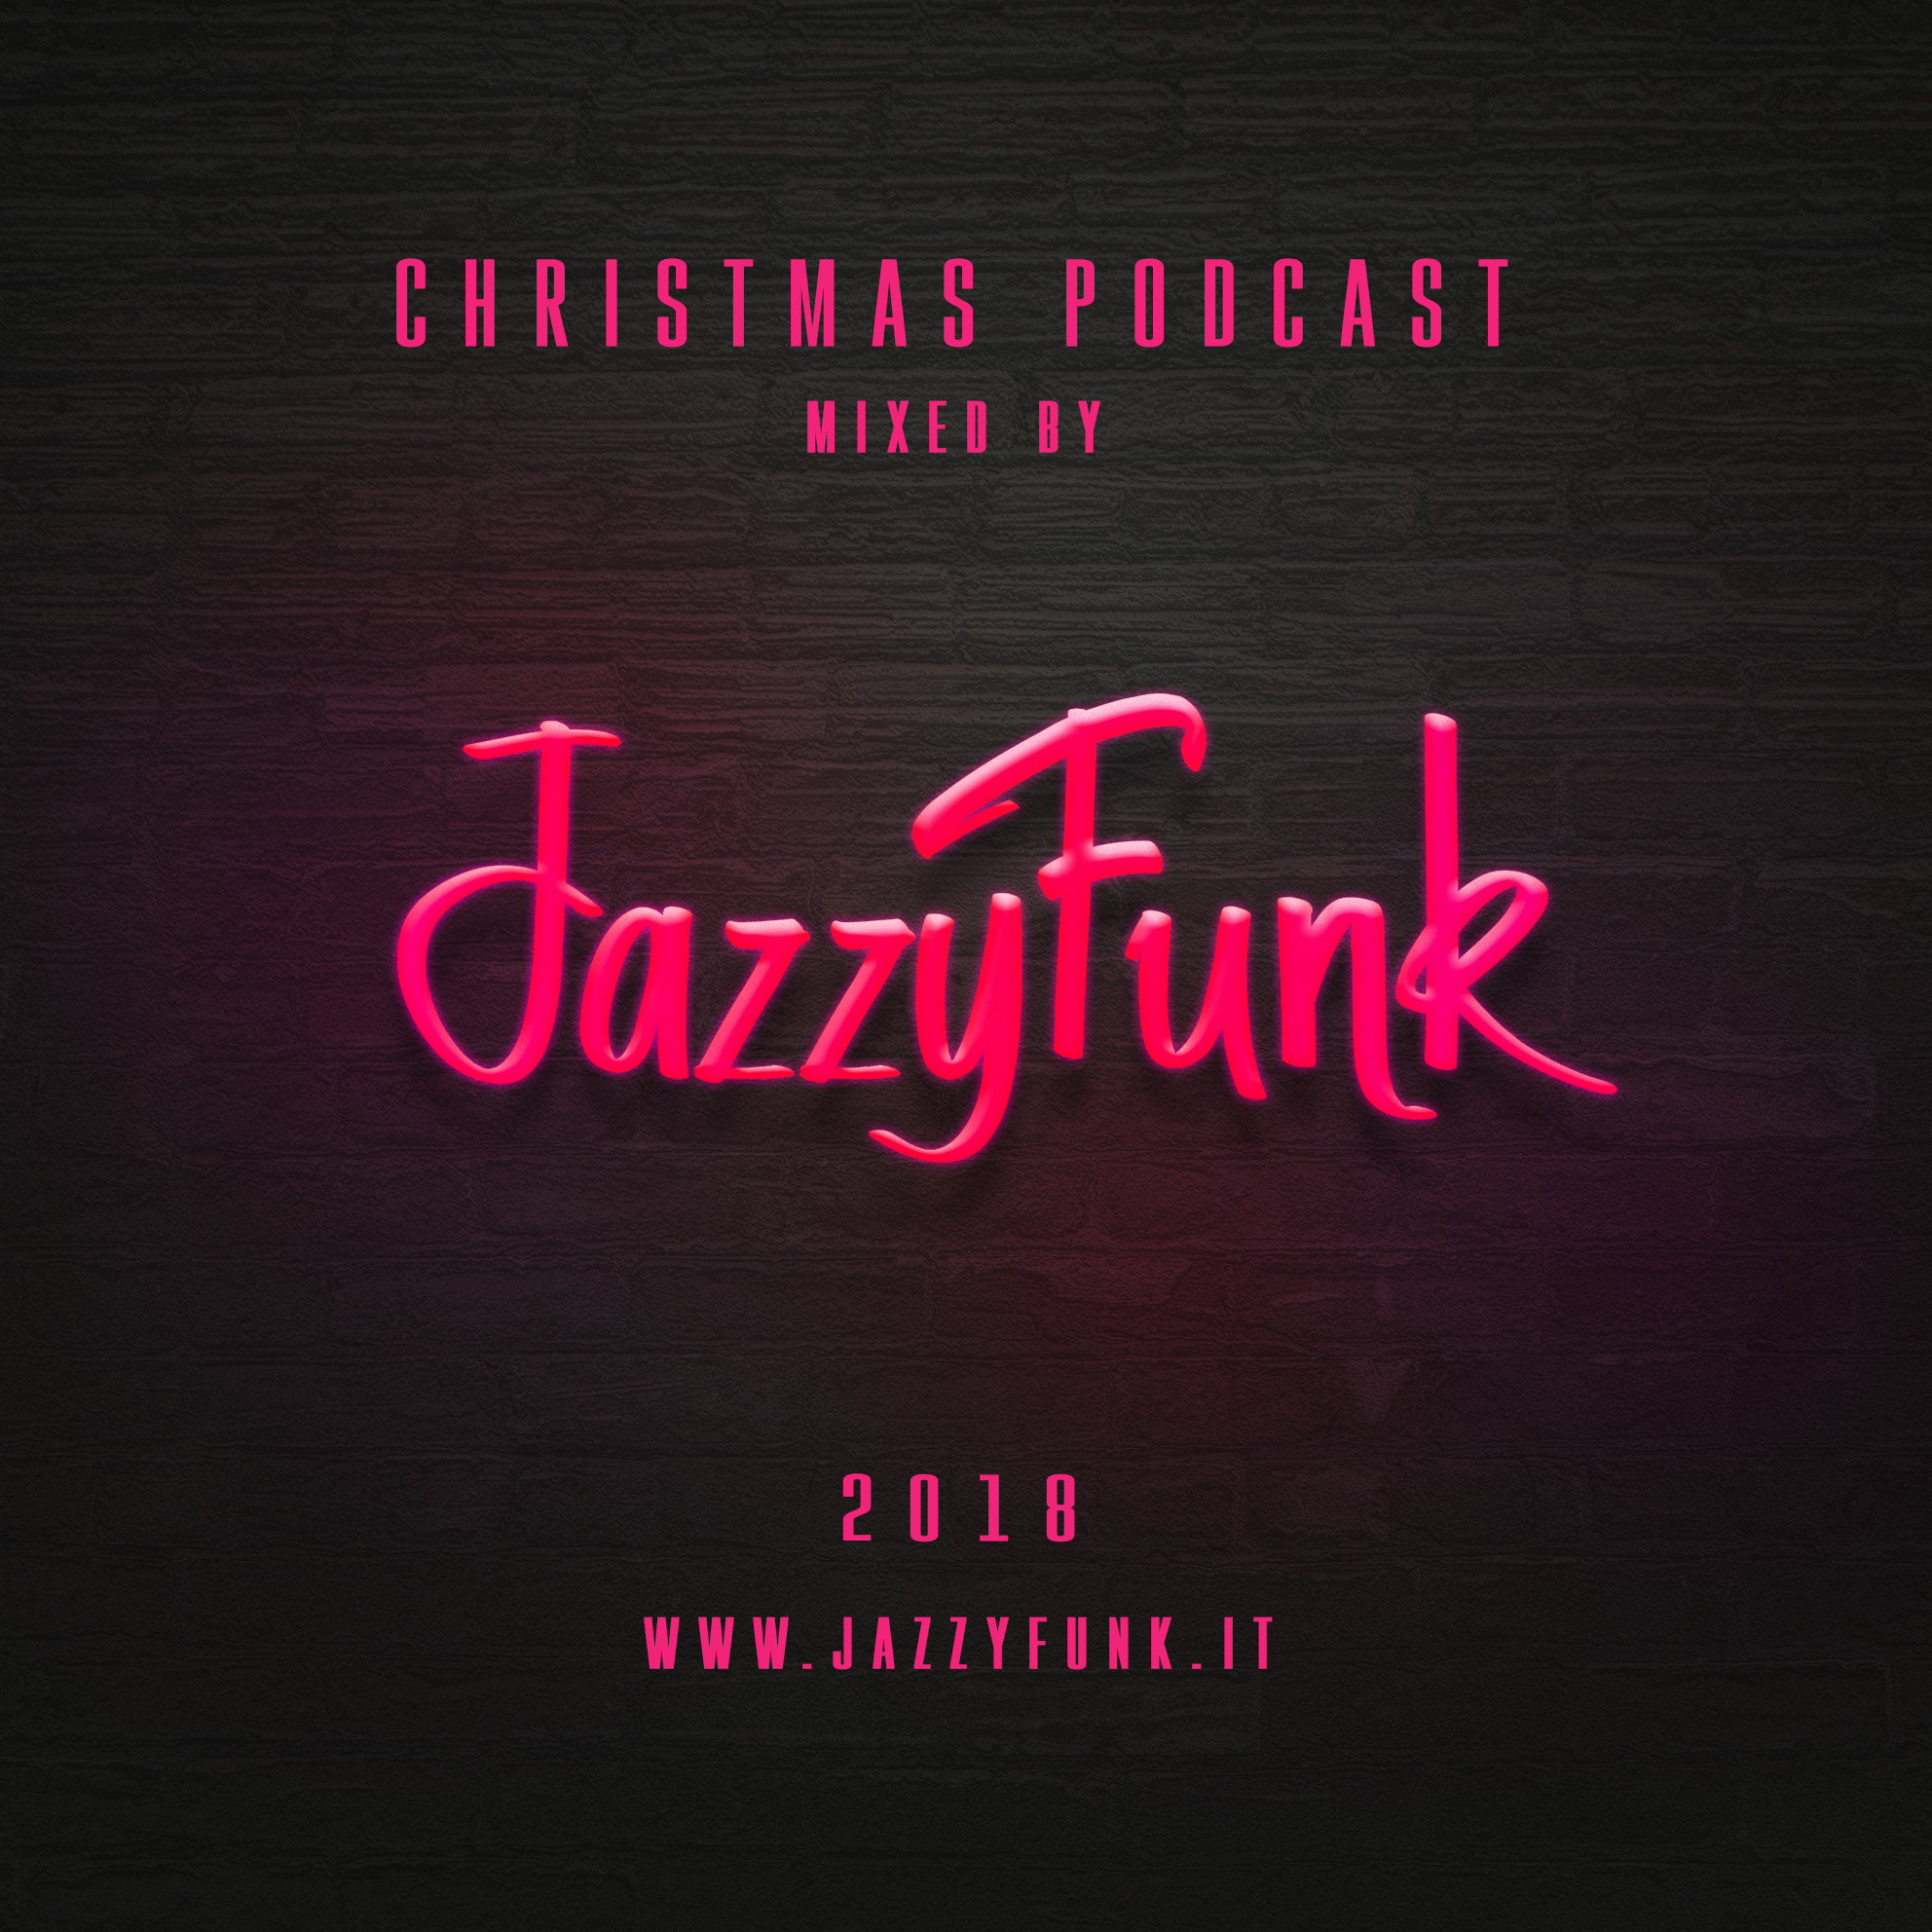 Christmas Podcast 2018